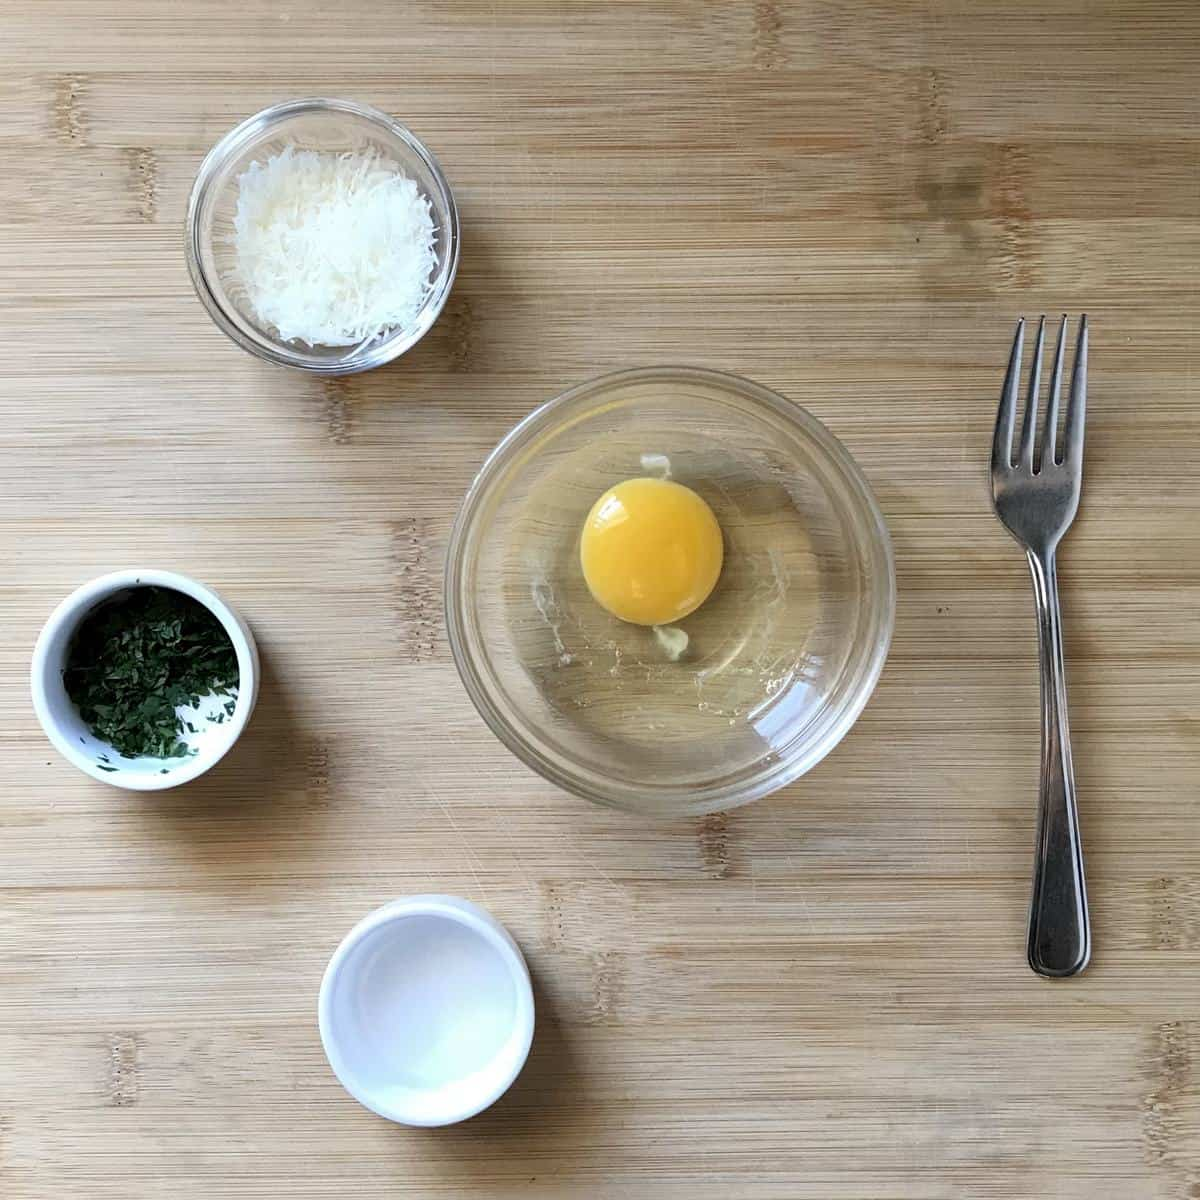 One egg, minced parsley , grated cheese and water in separate bowls on a cutting board.